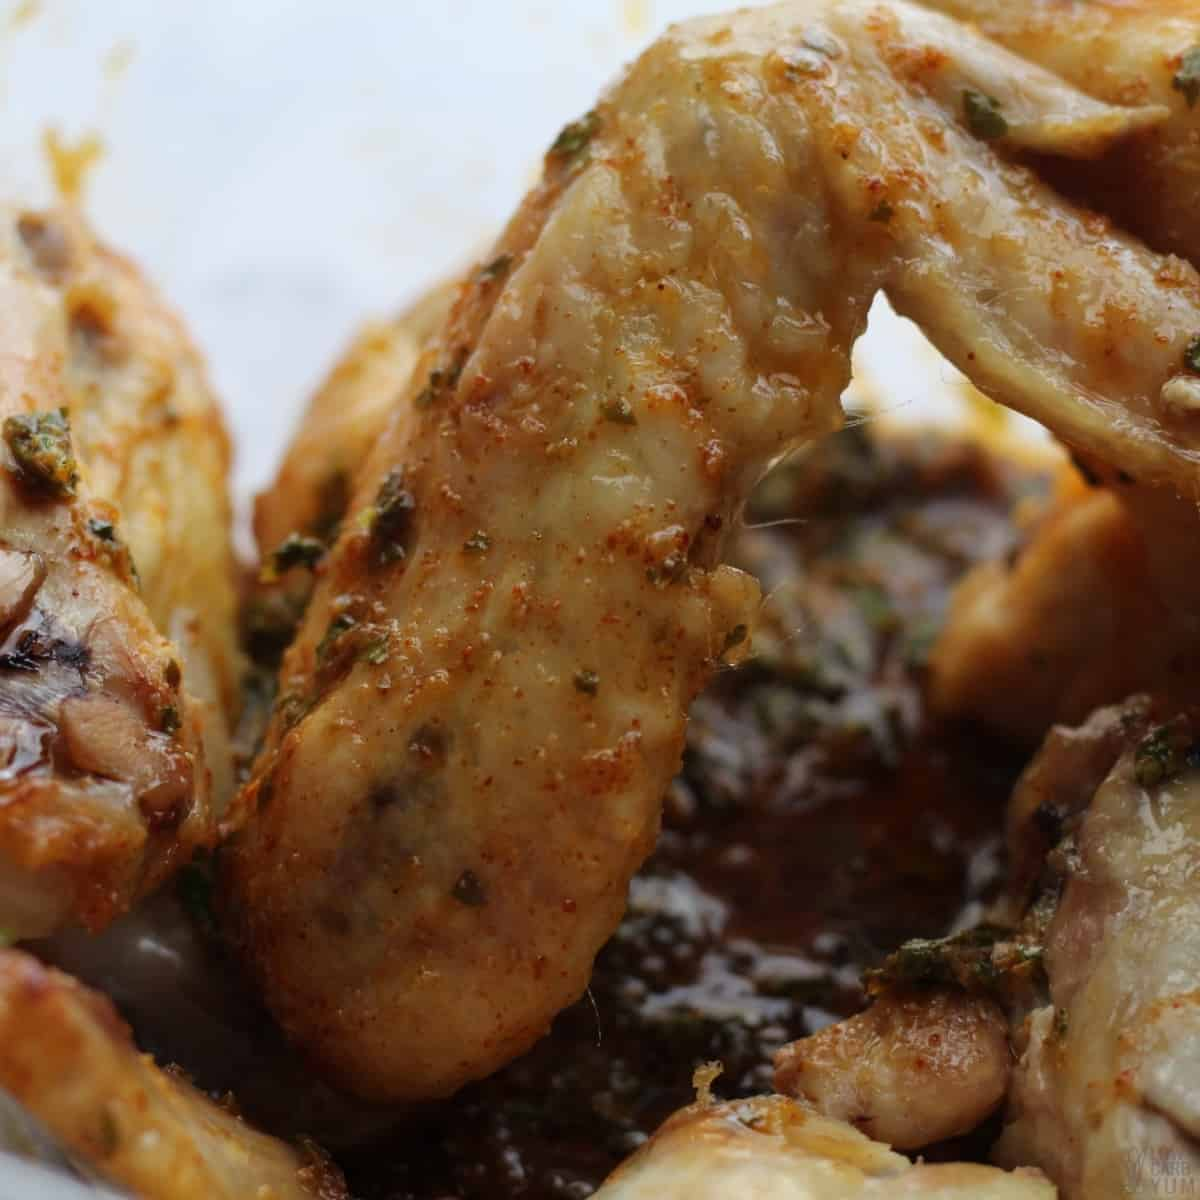 combining sauce with wings in bowl